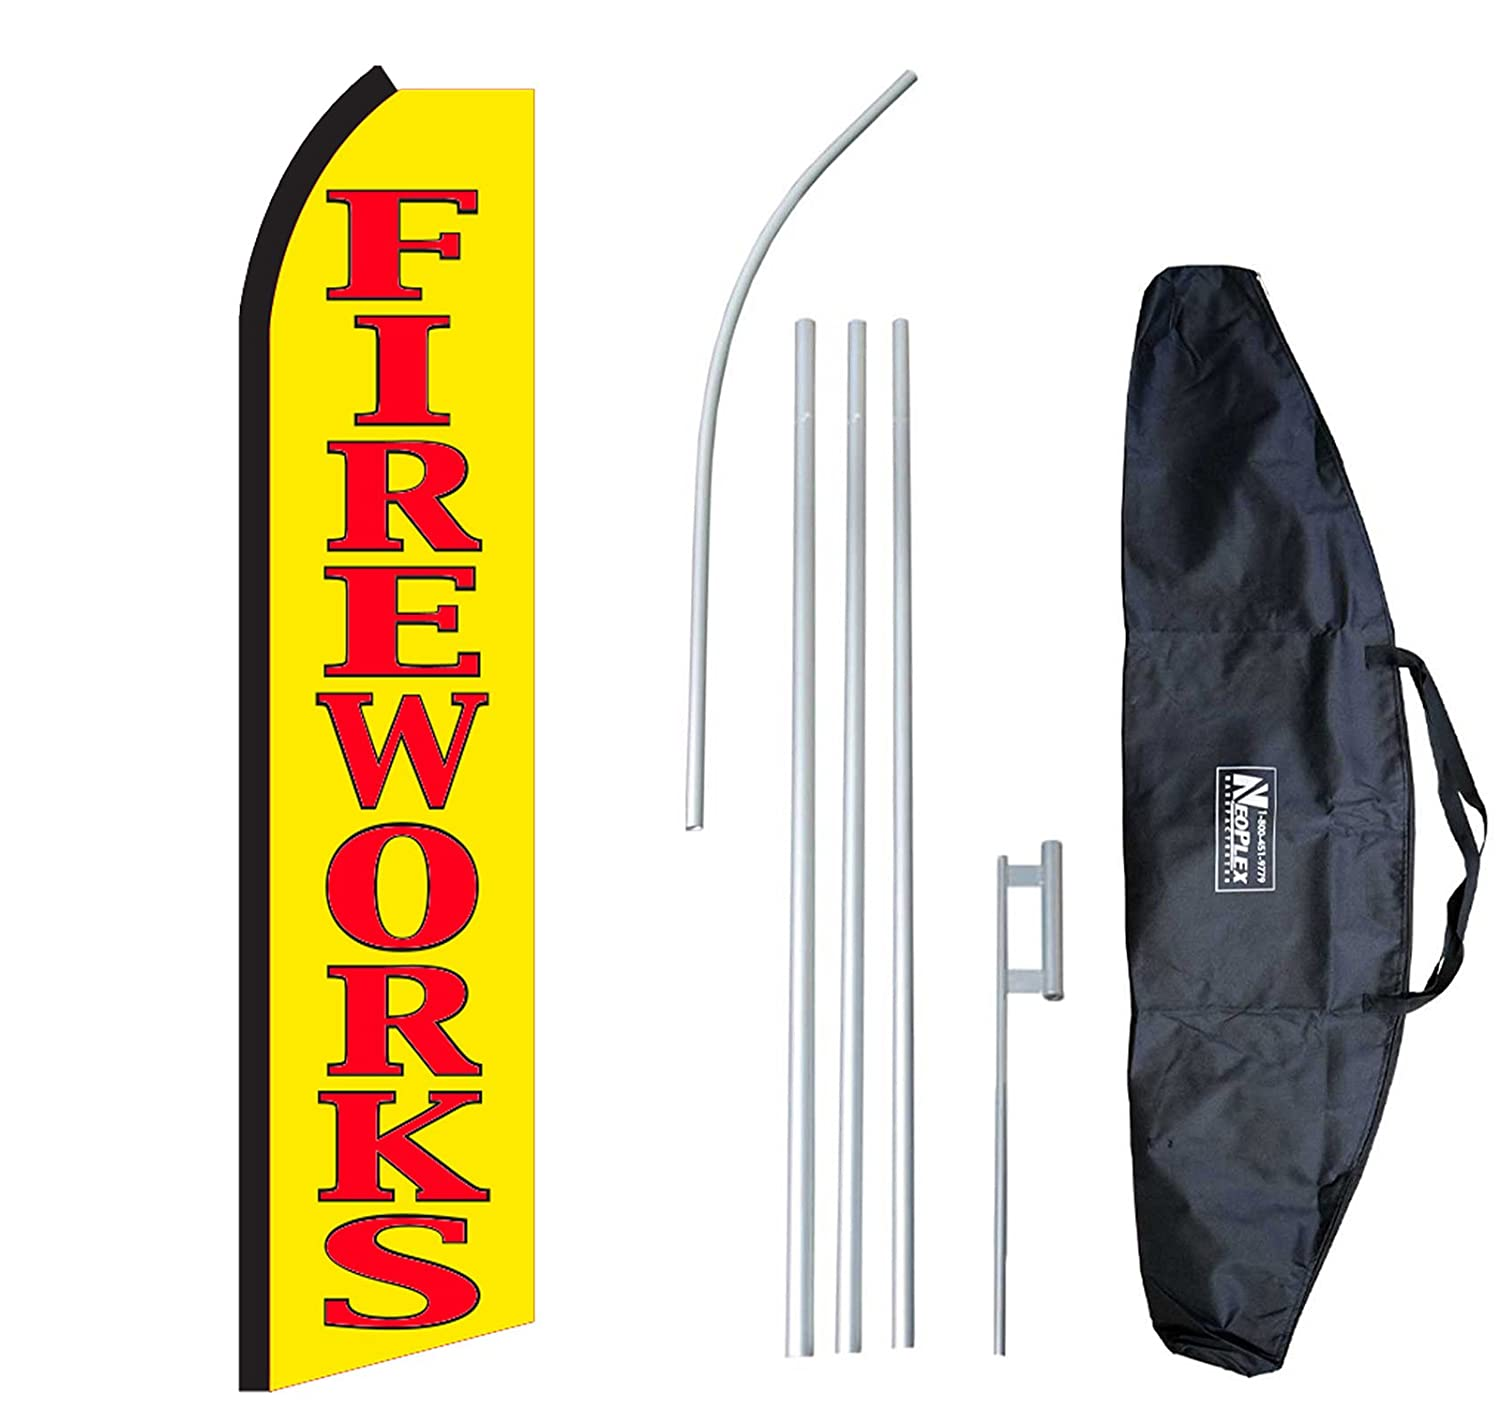 Fireworks 12-Foot Swooper Feather Flag and Case Complete Set.Includes 12-Foot Flag, 15-Foot Pole, Ground Spike, and Carrying/Storage Case NEOPlex